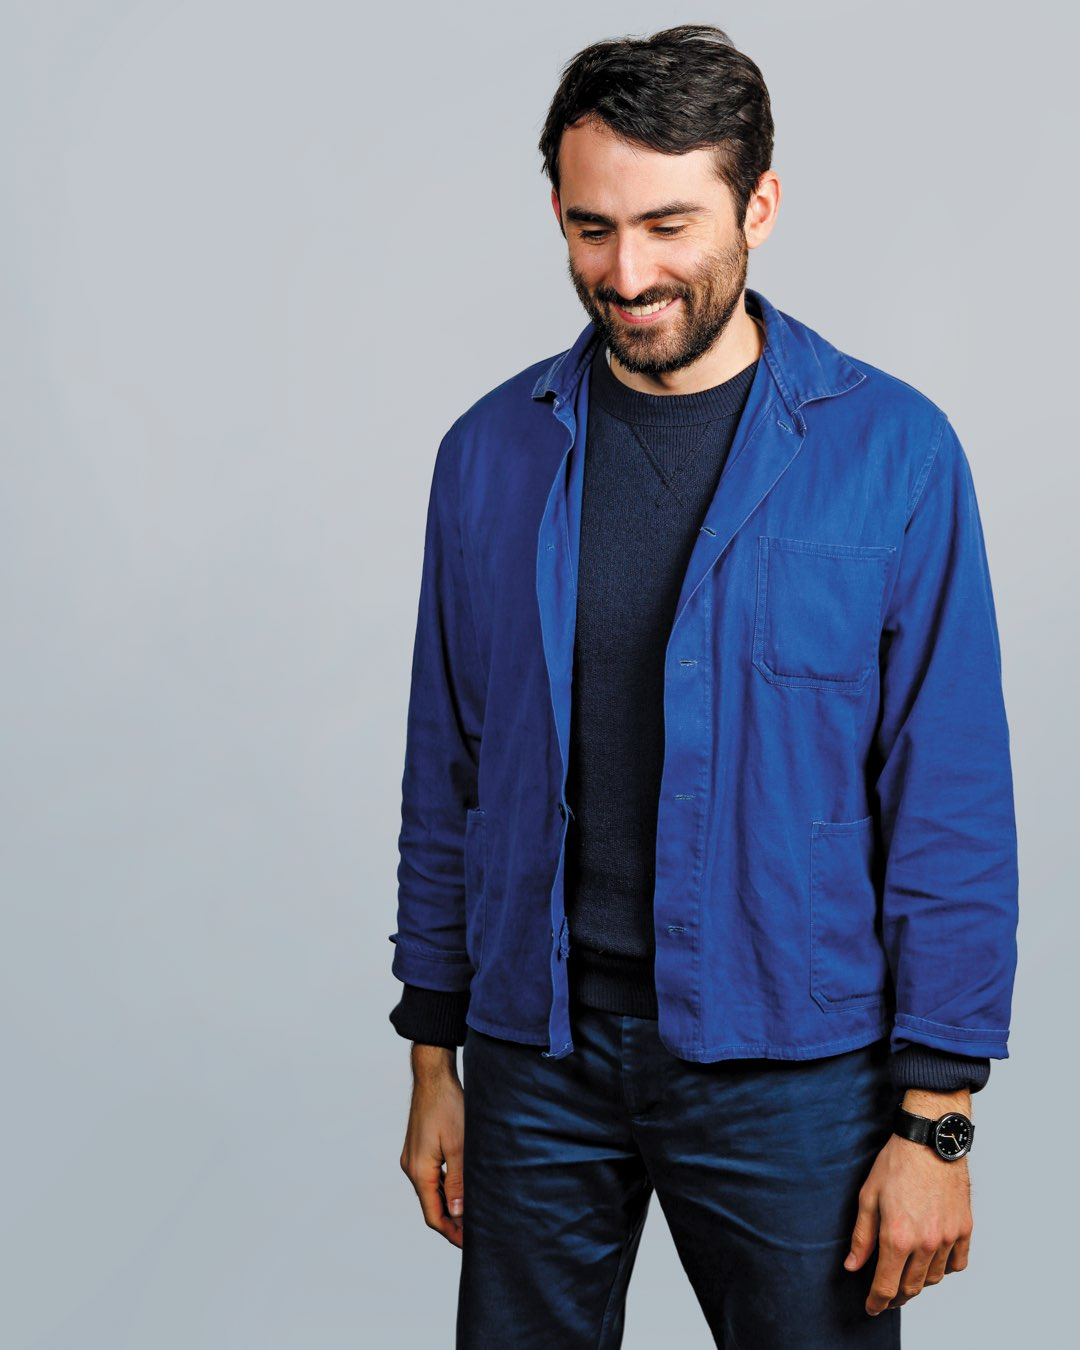 Villanova School of Business alumnus Ryan Burke with a beard in a blue denim button down and jeans